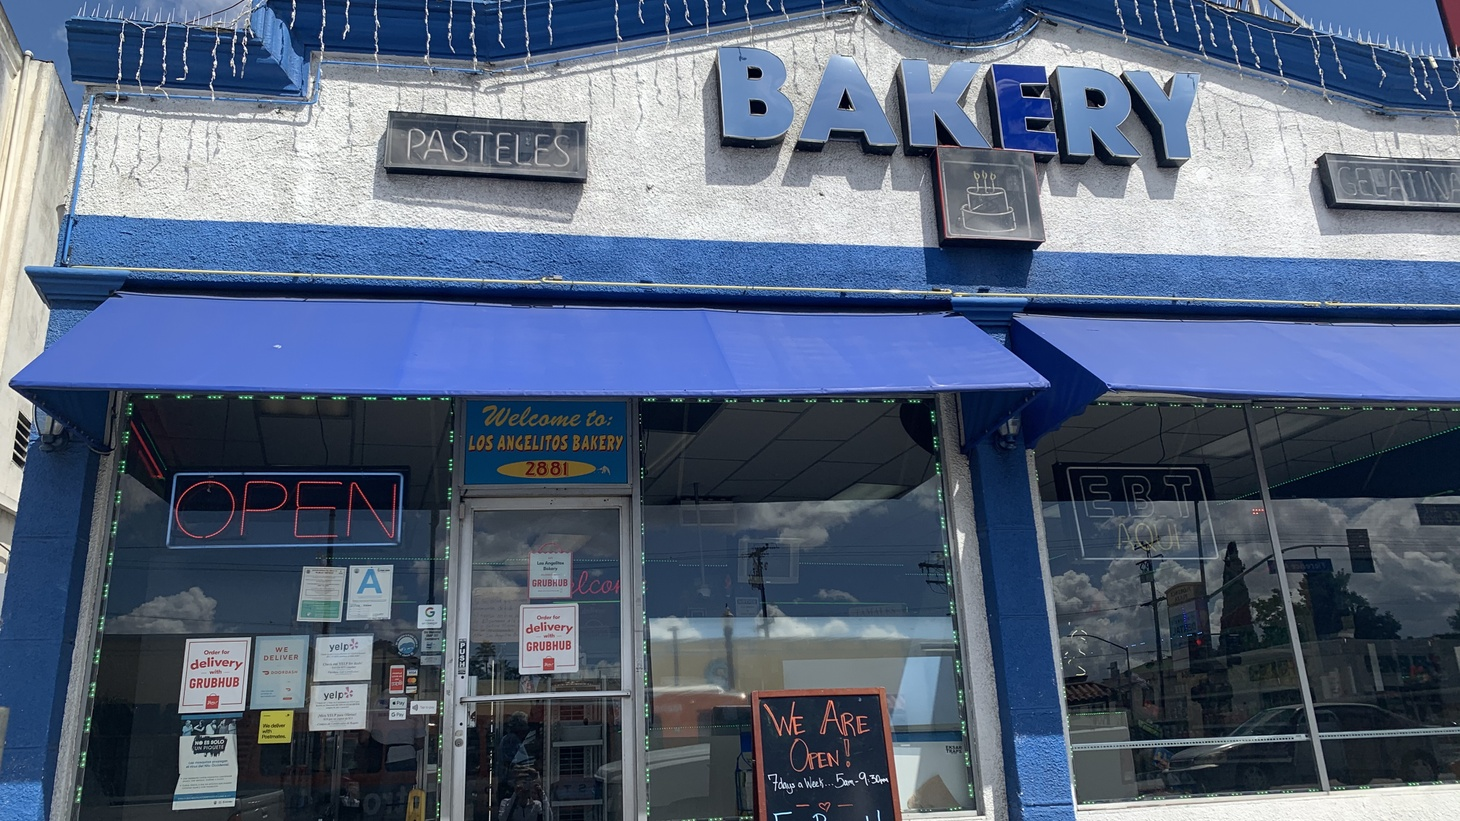 Los Angelitos Bakery in Huntington Park is offering kids free bread during the COVID-19 pandemic.